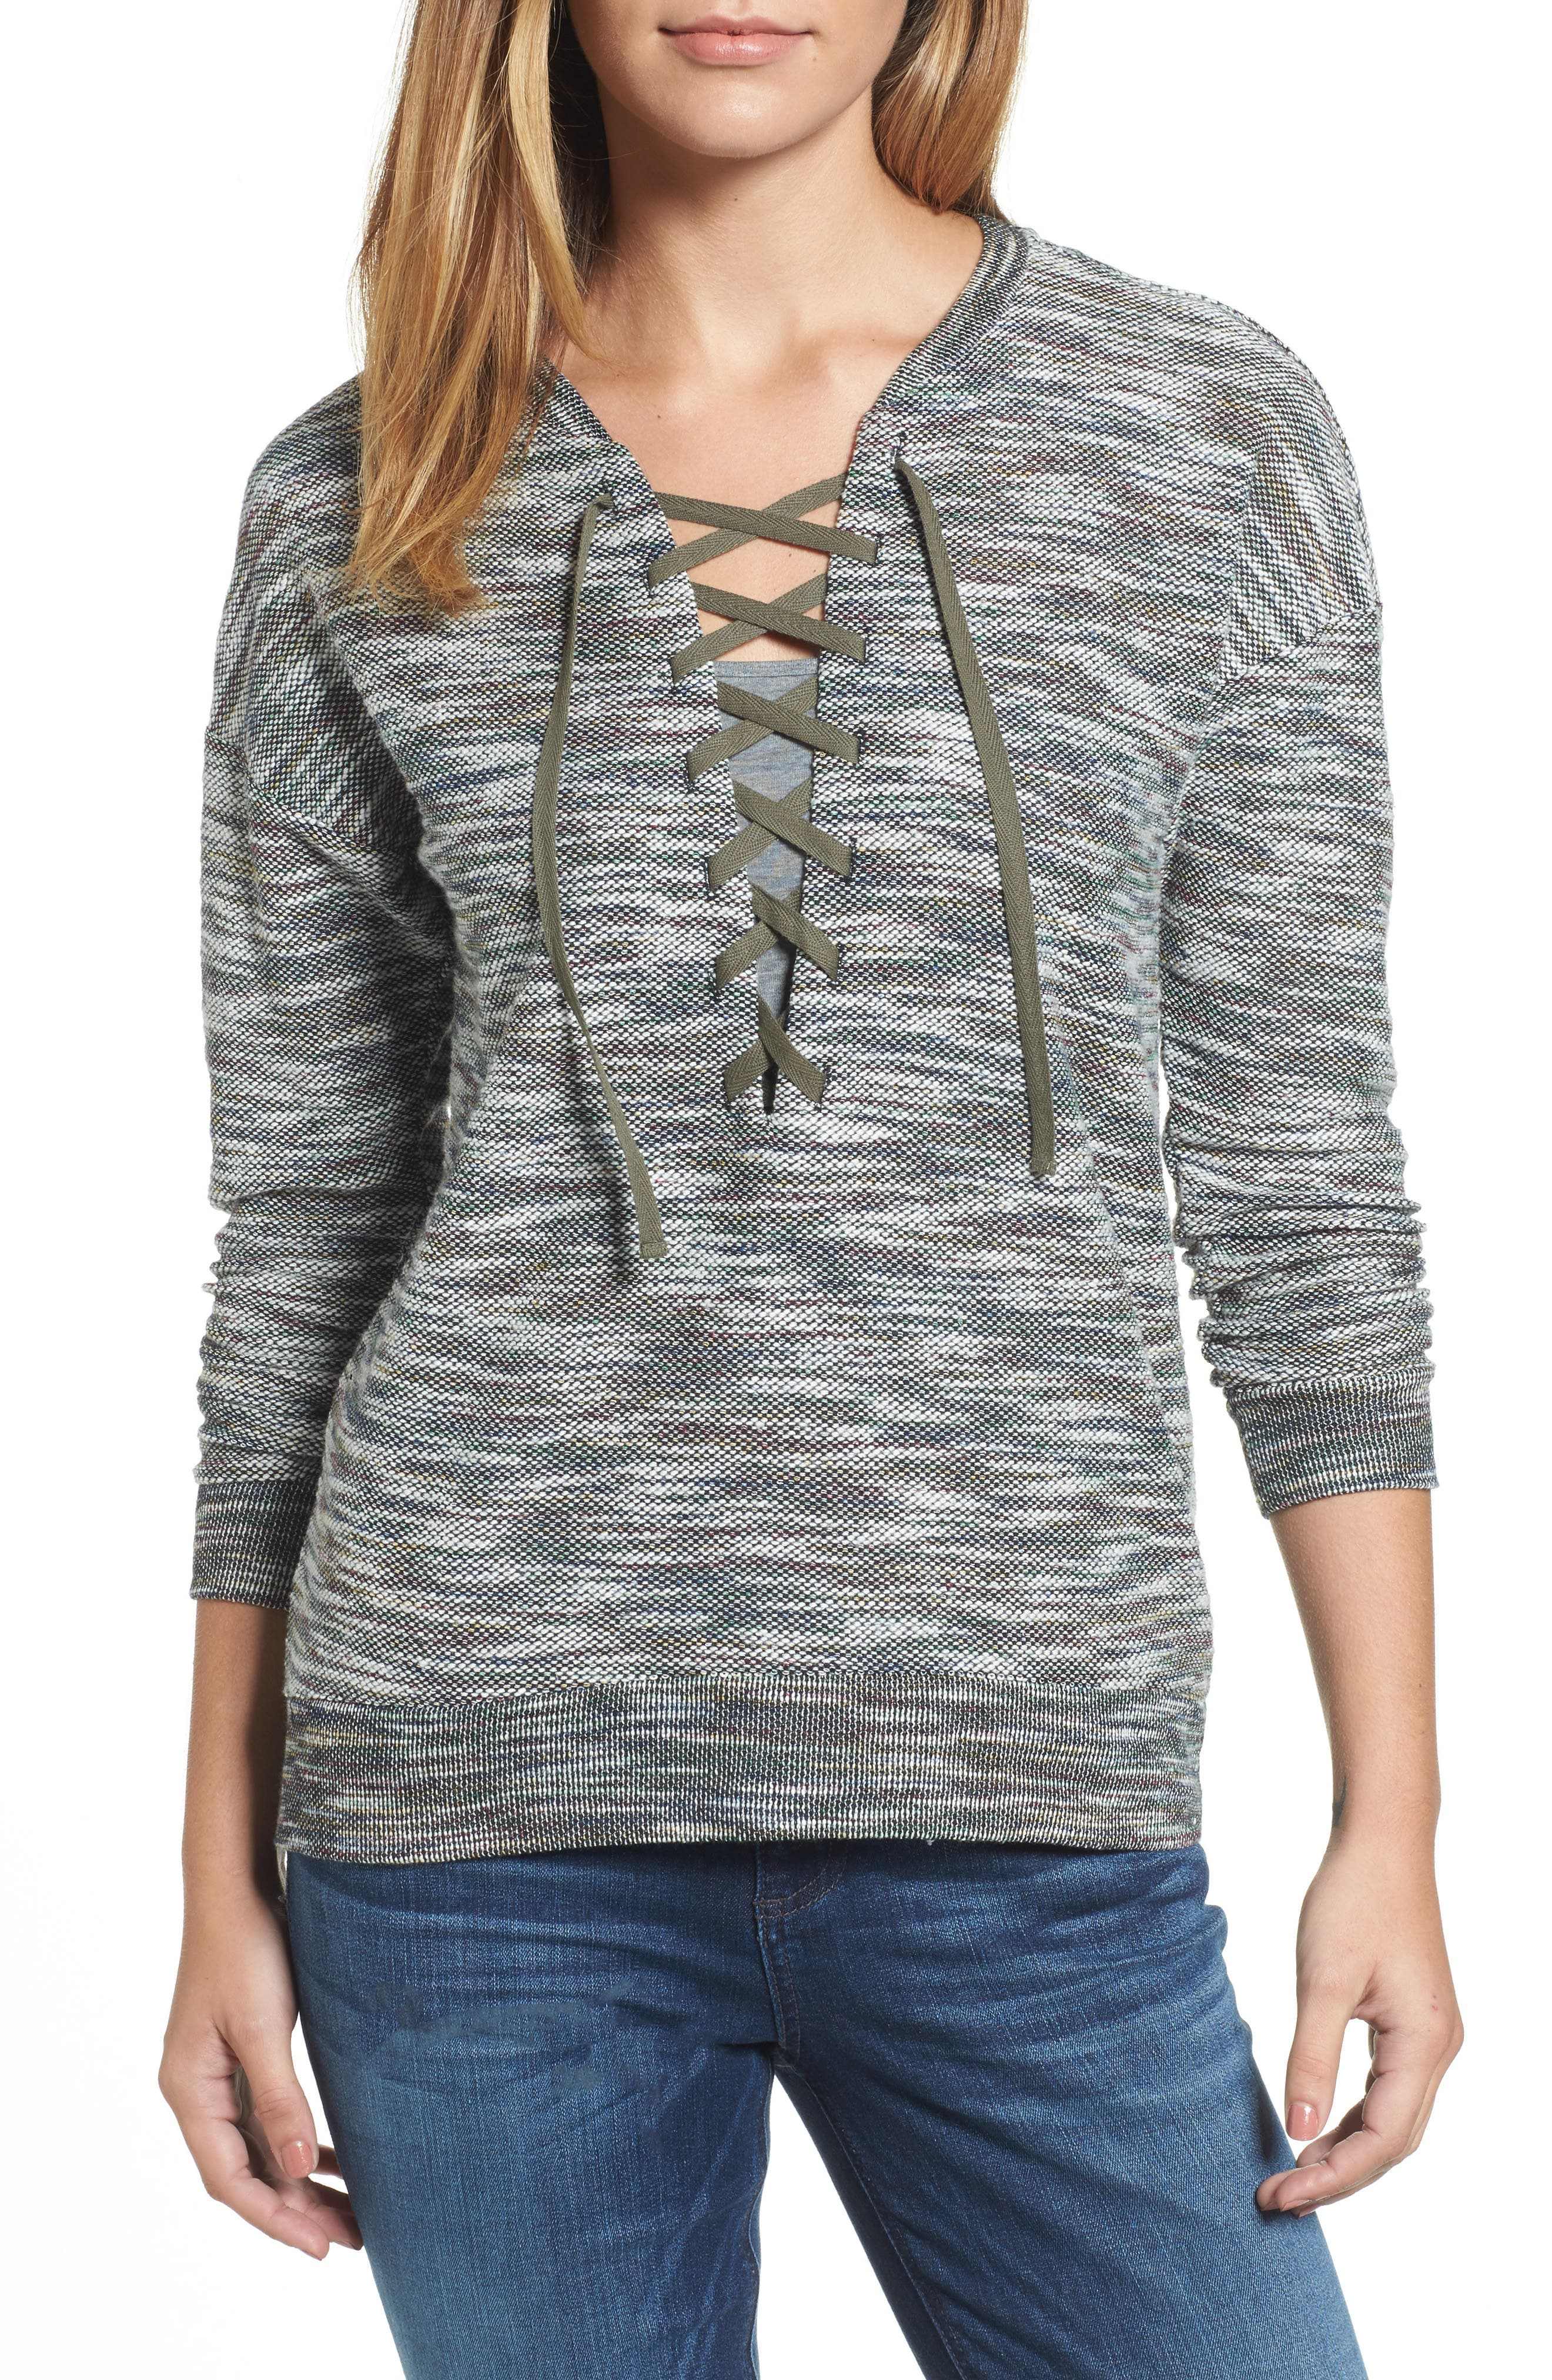 Alternate Image 1 Selected - KUT from the Kloth Everly Lace-Up Sweater